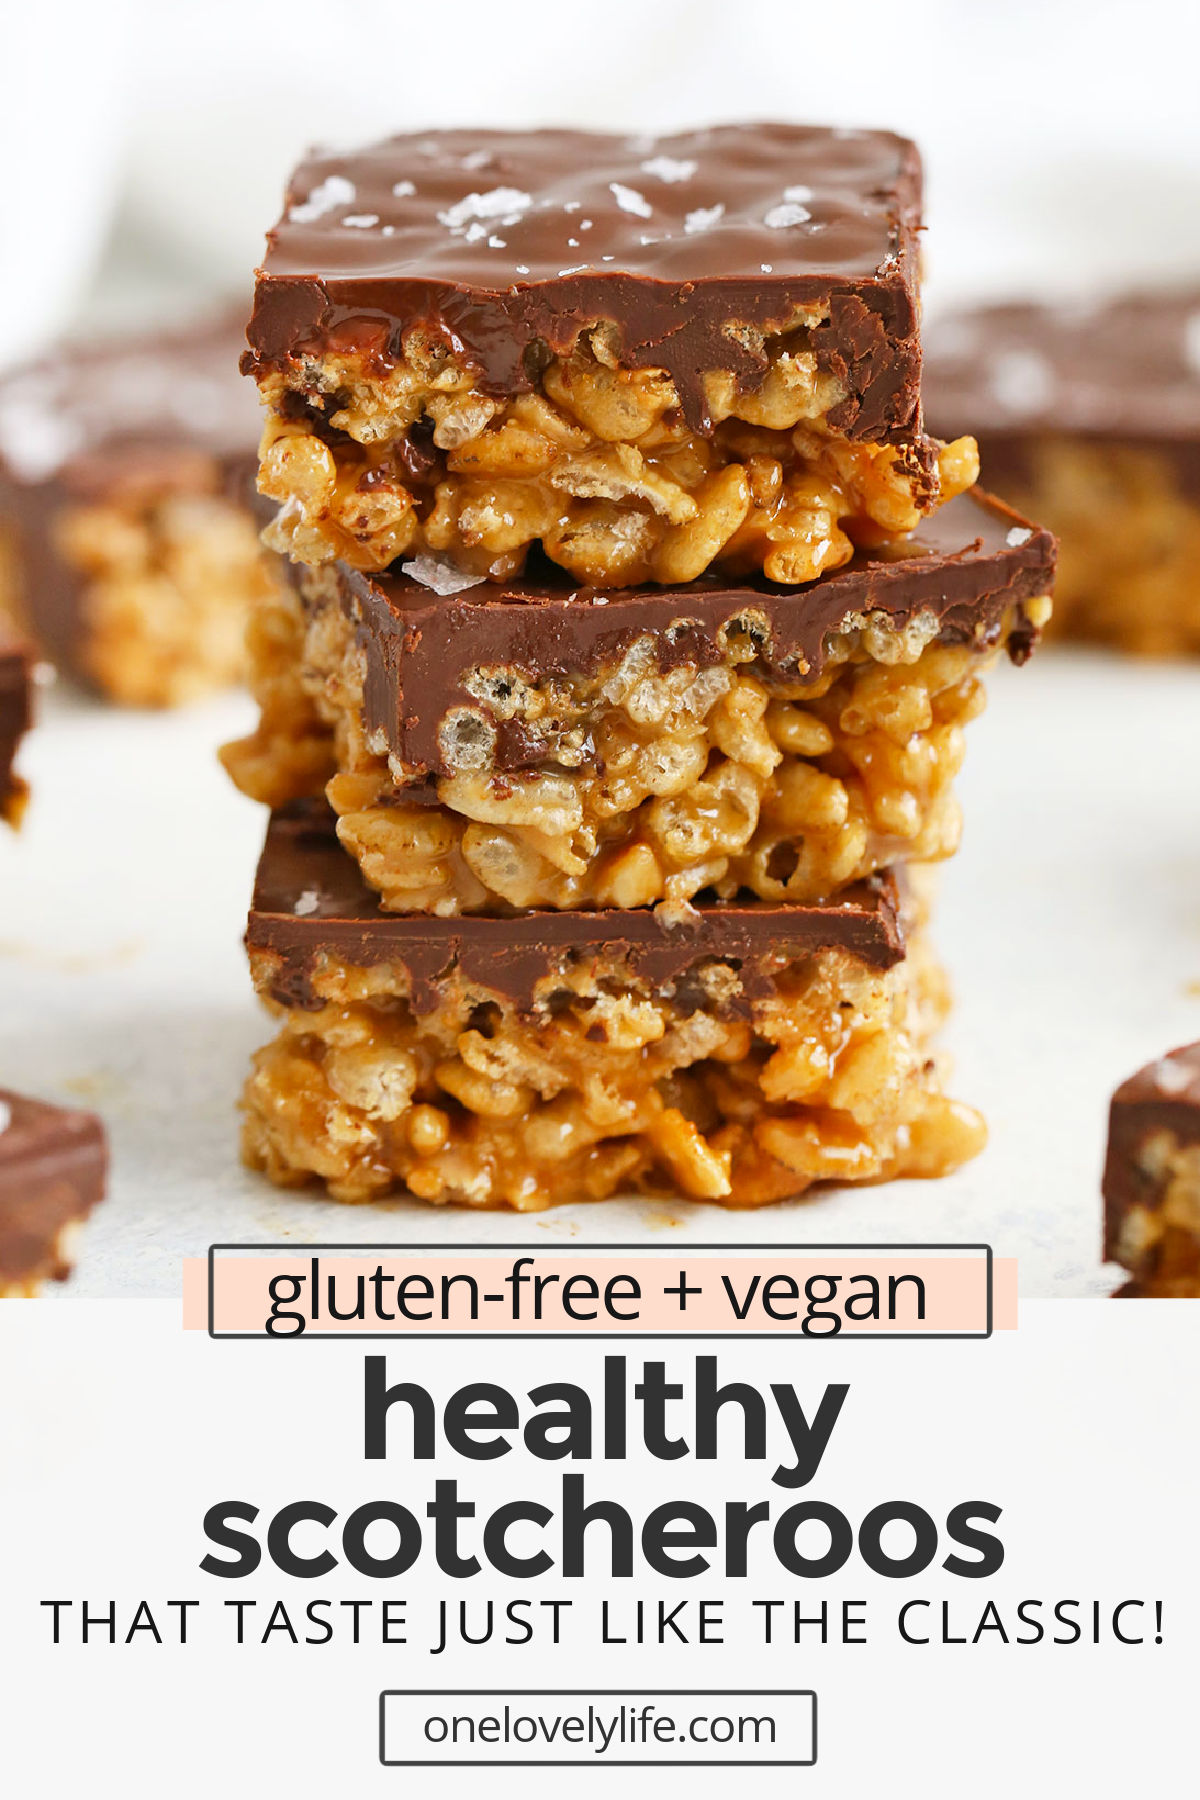 Healthy Scotcheroos - My childhood remadewithout corn syrup or refined sugar! You'll love these gooey peanut butterrice krispies treats withchocolate topping just as much as the original. (Gluten free & vegan) // Rice Krispies Treats // No Bake Dessert // #vegan #ricekrispiestreats #nobakedessert #chocolate #scotcheroos #glutenfree